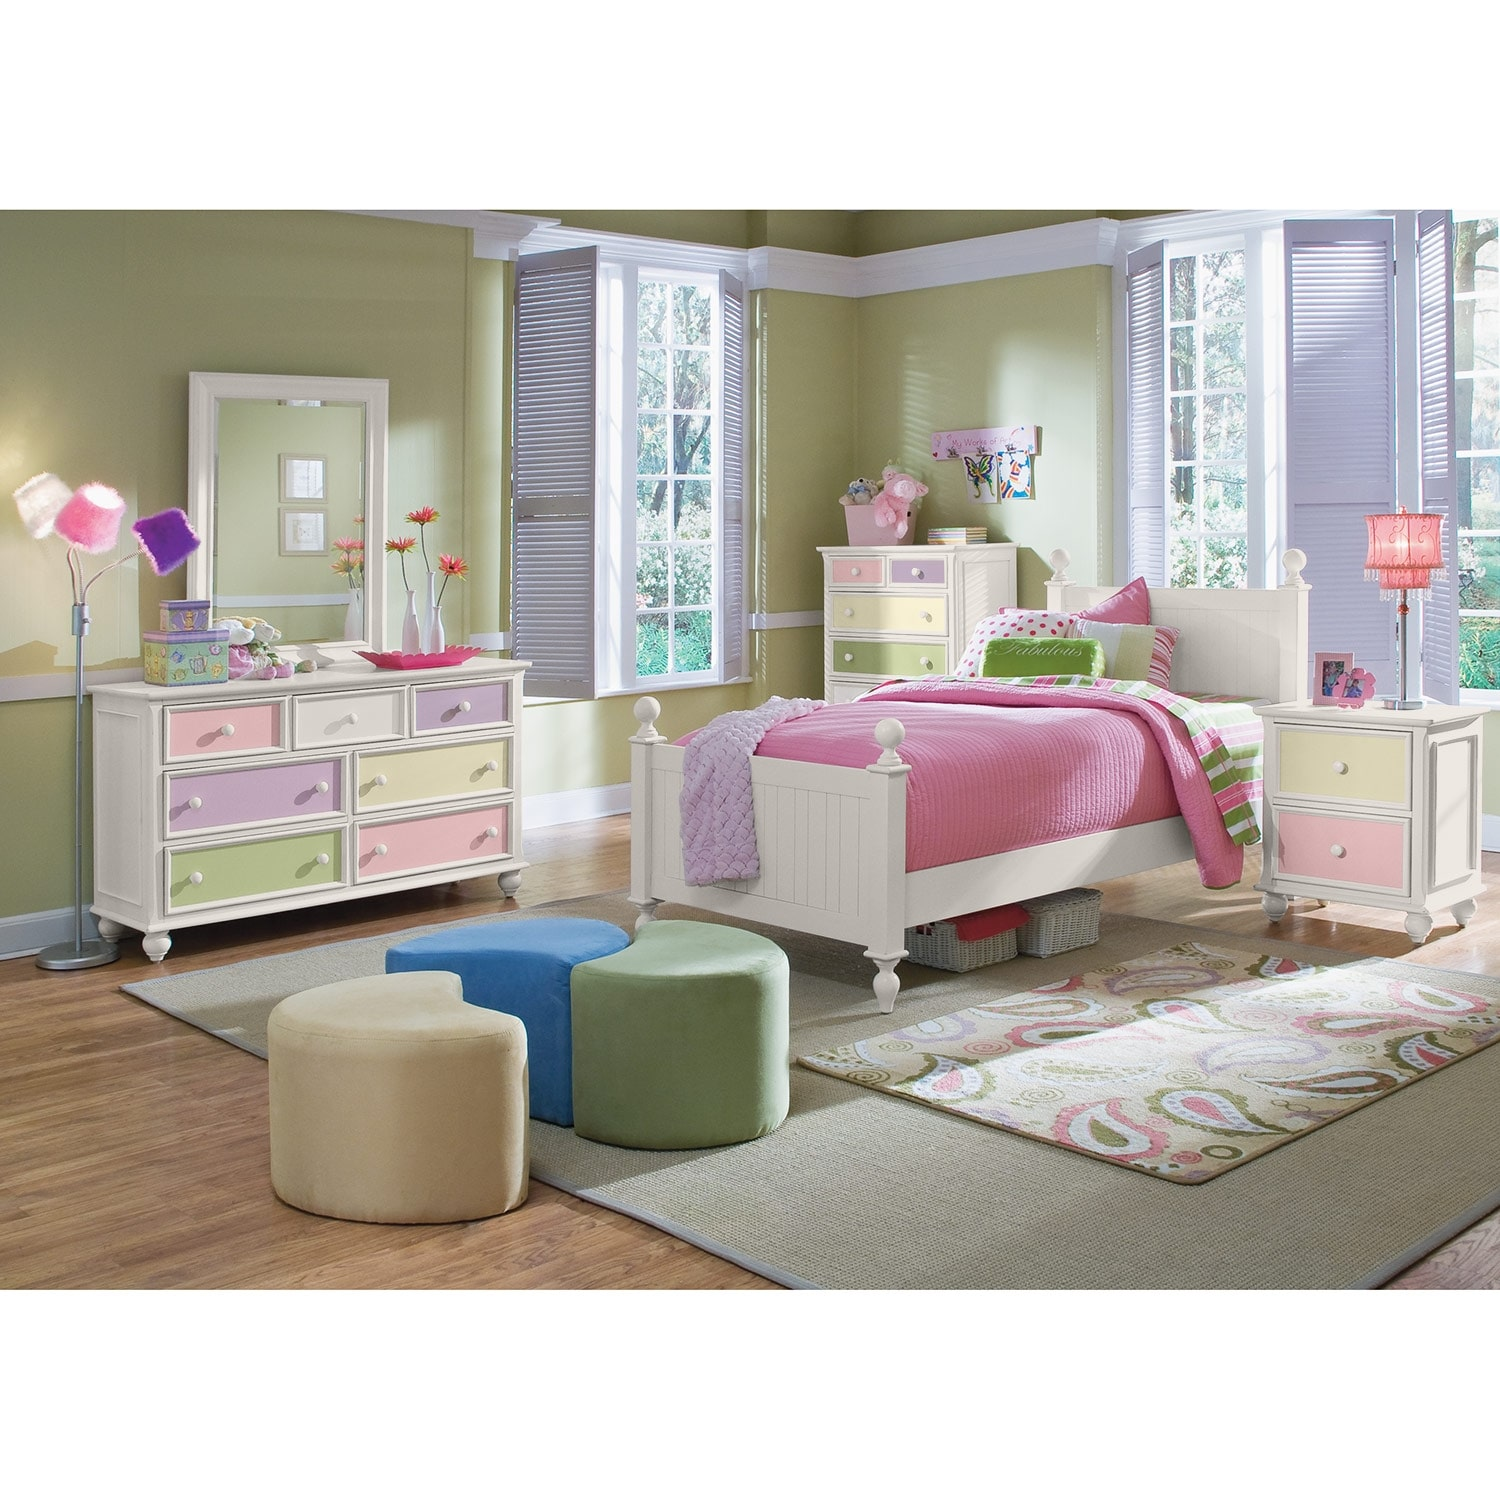 City Furmiture: Colorworks Full Bed - White